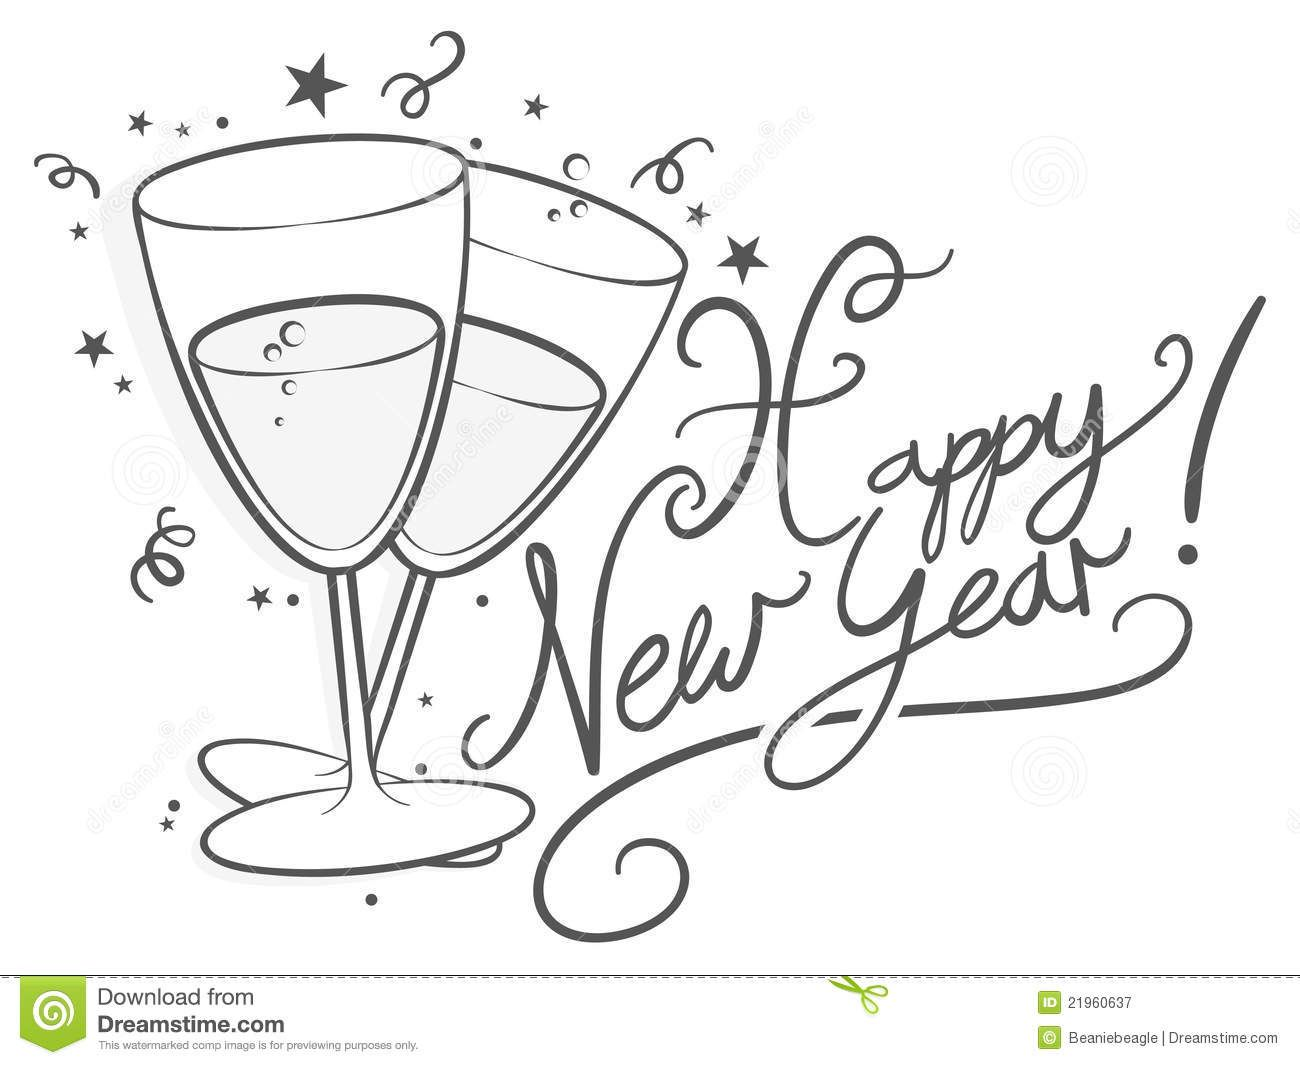 Happy New Year Clipart Black And White 3 New Year Clipart Happy New Year Newyear